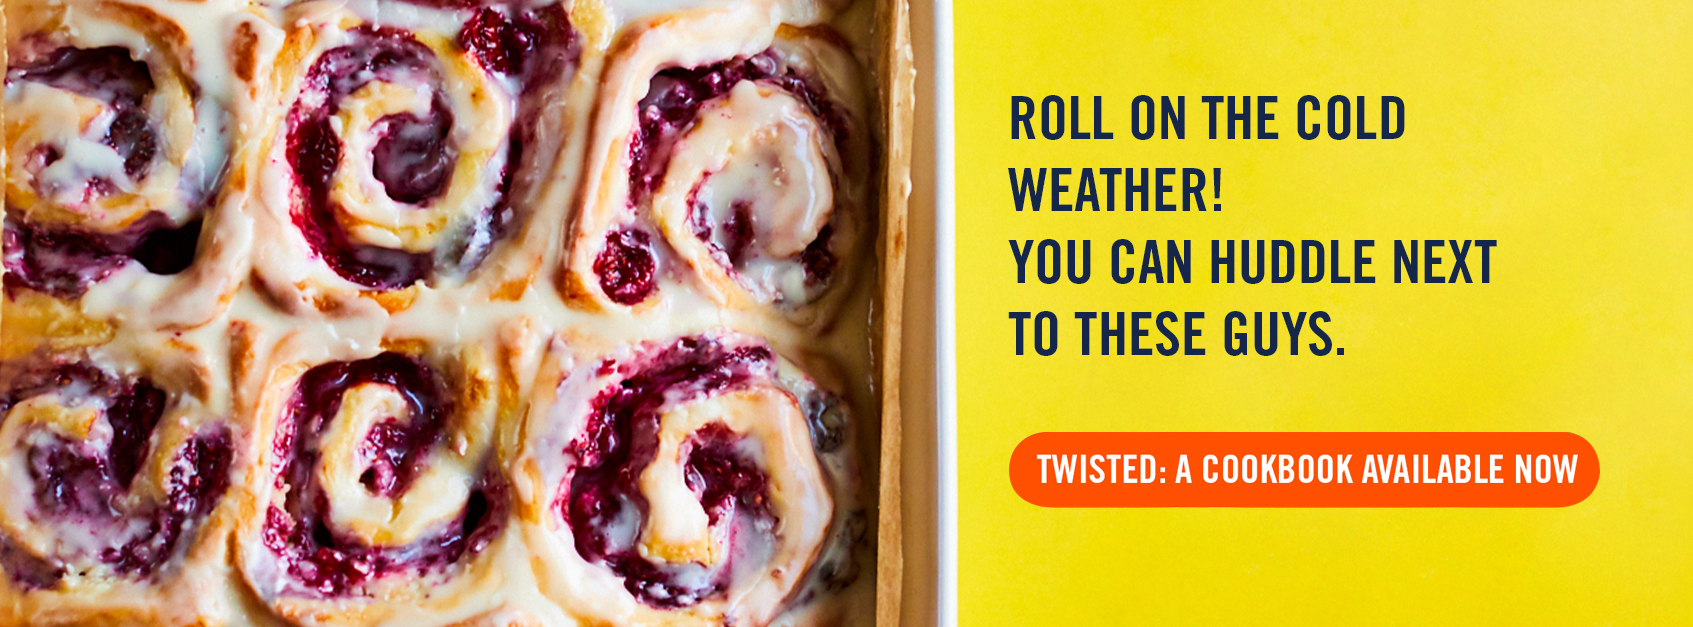 Twisted: A Cookbook is the perfect Christmas gif